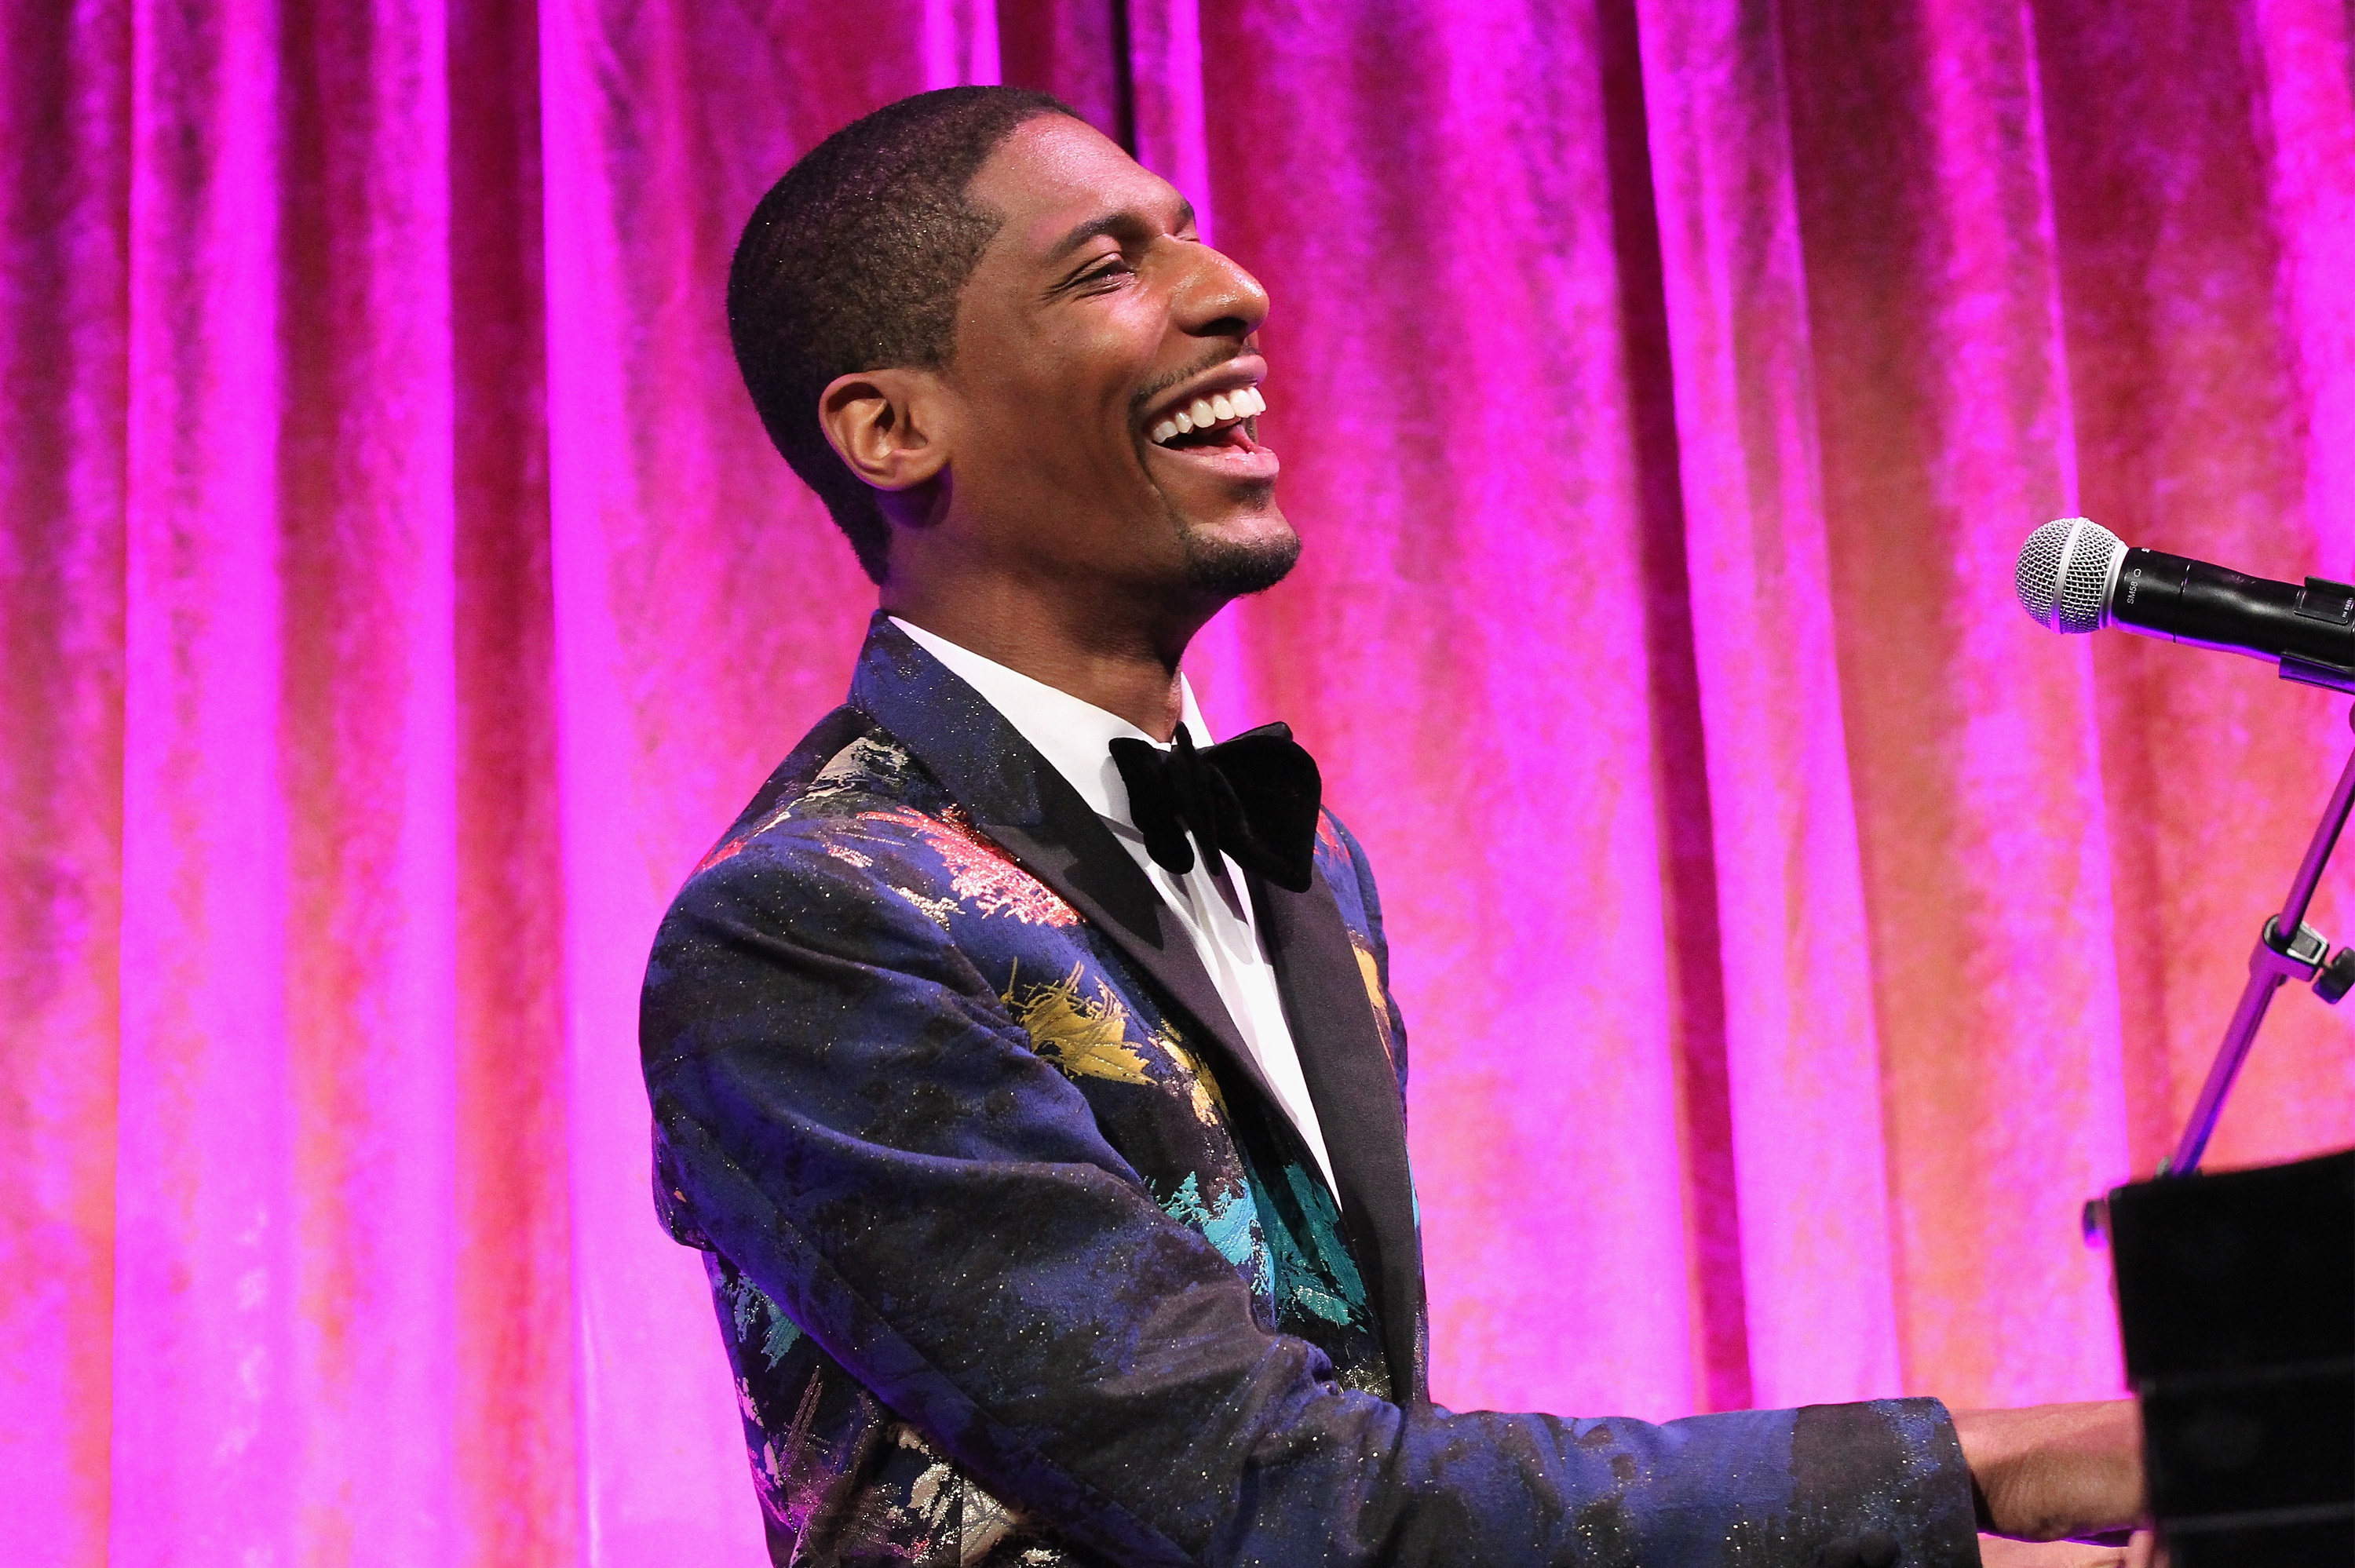 Not My Job: \'Stay Human\' Bandleader Jon Batiste Gets Quizzed On ...